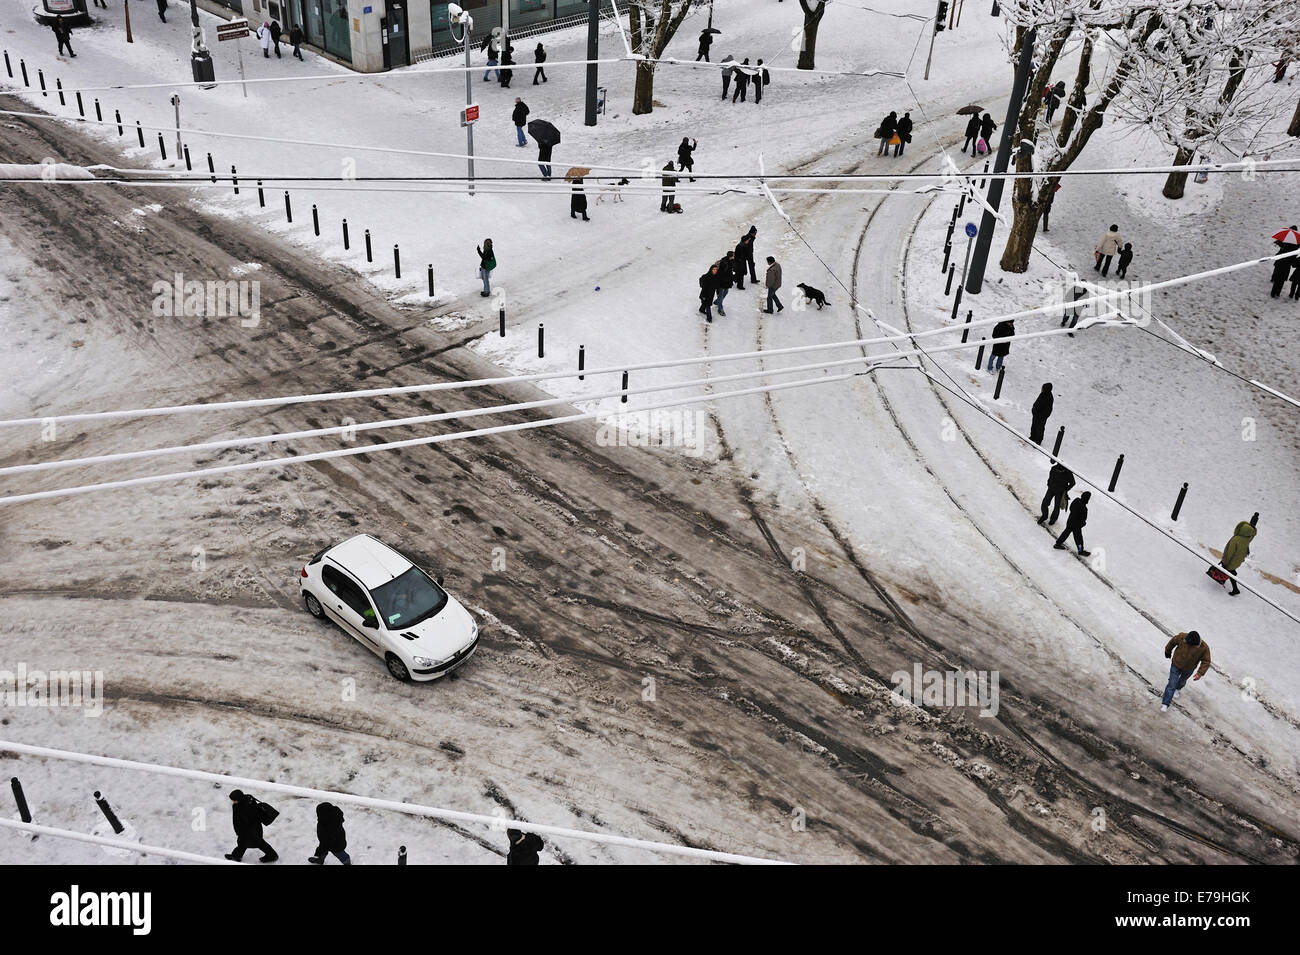 City centre road junction and streets in winter after heavy snow - Stock Image